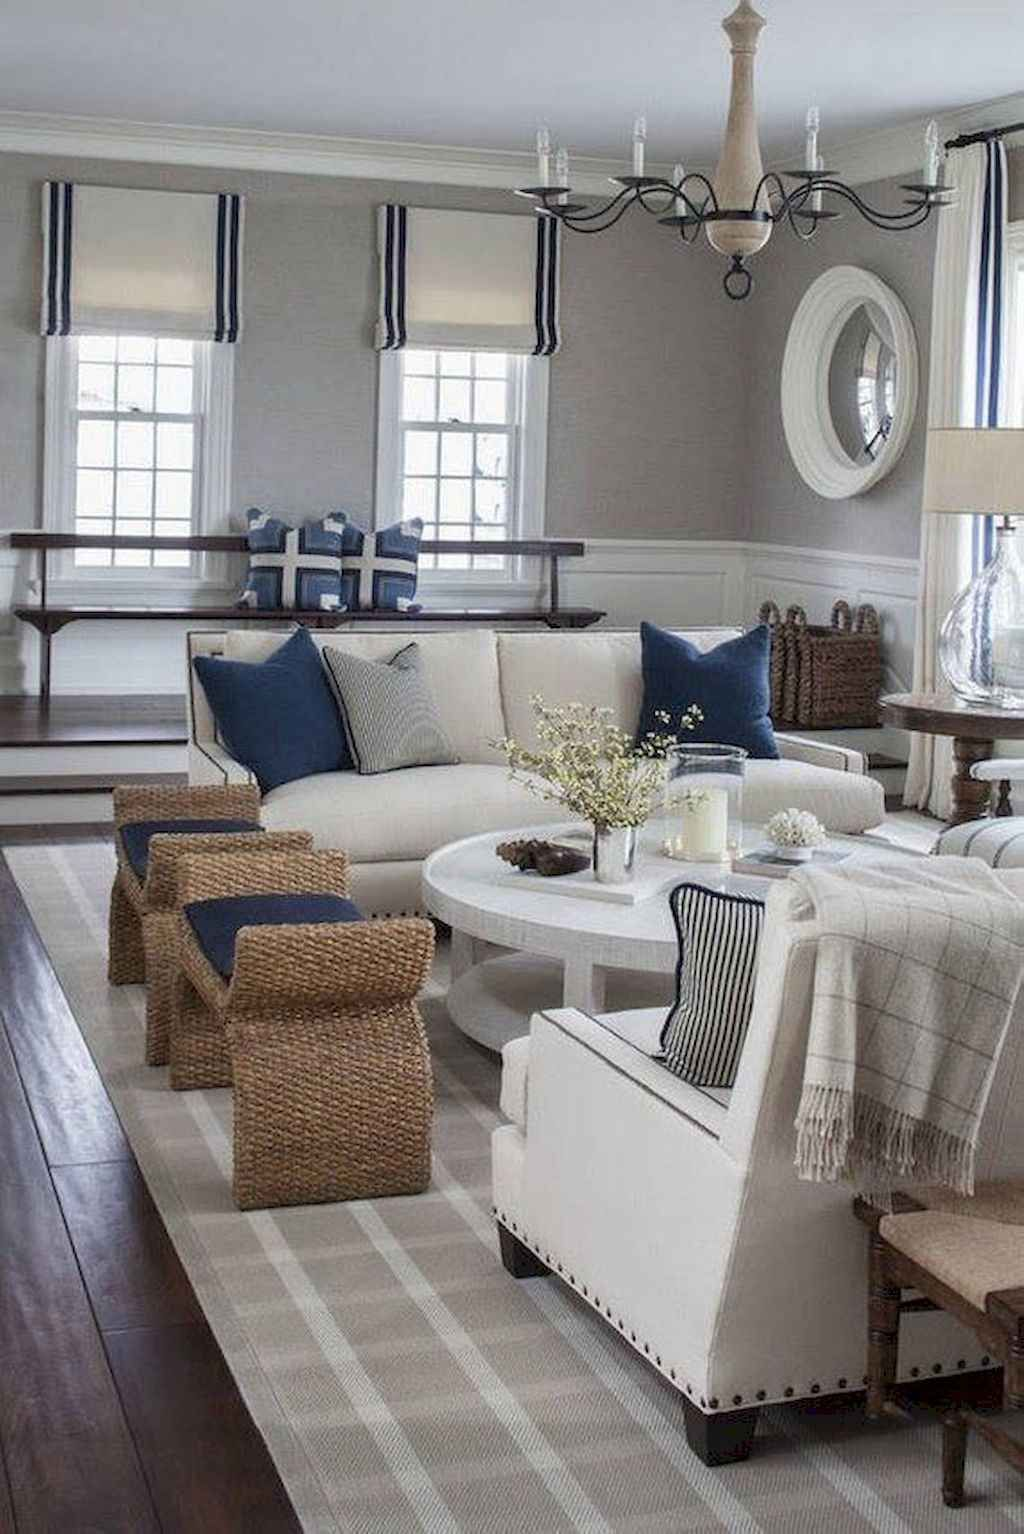 65 Gorgeous Coastal Living Room Decor Ideas #coastallivingrooms